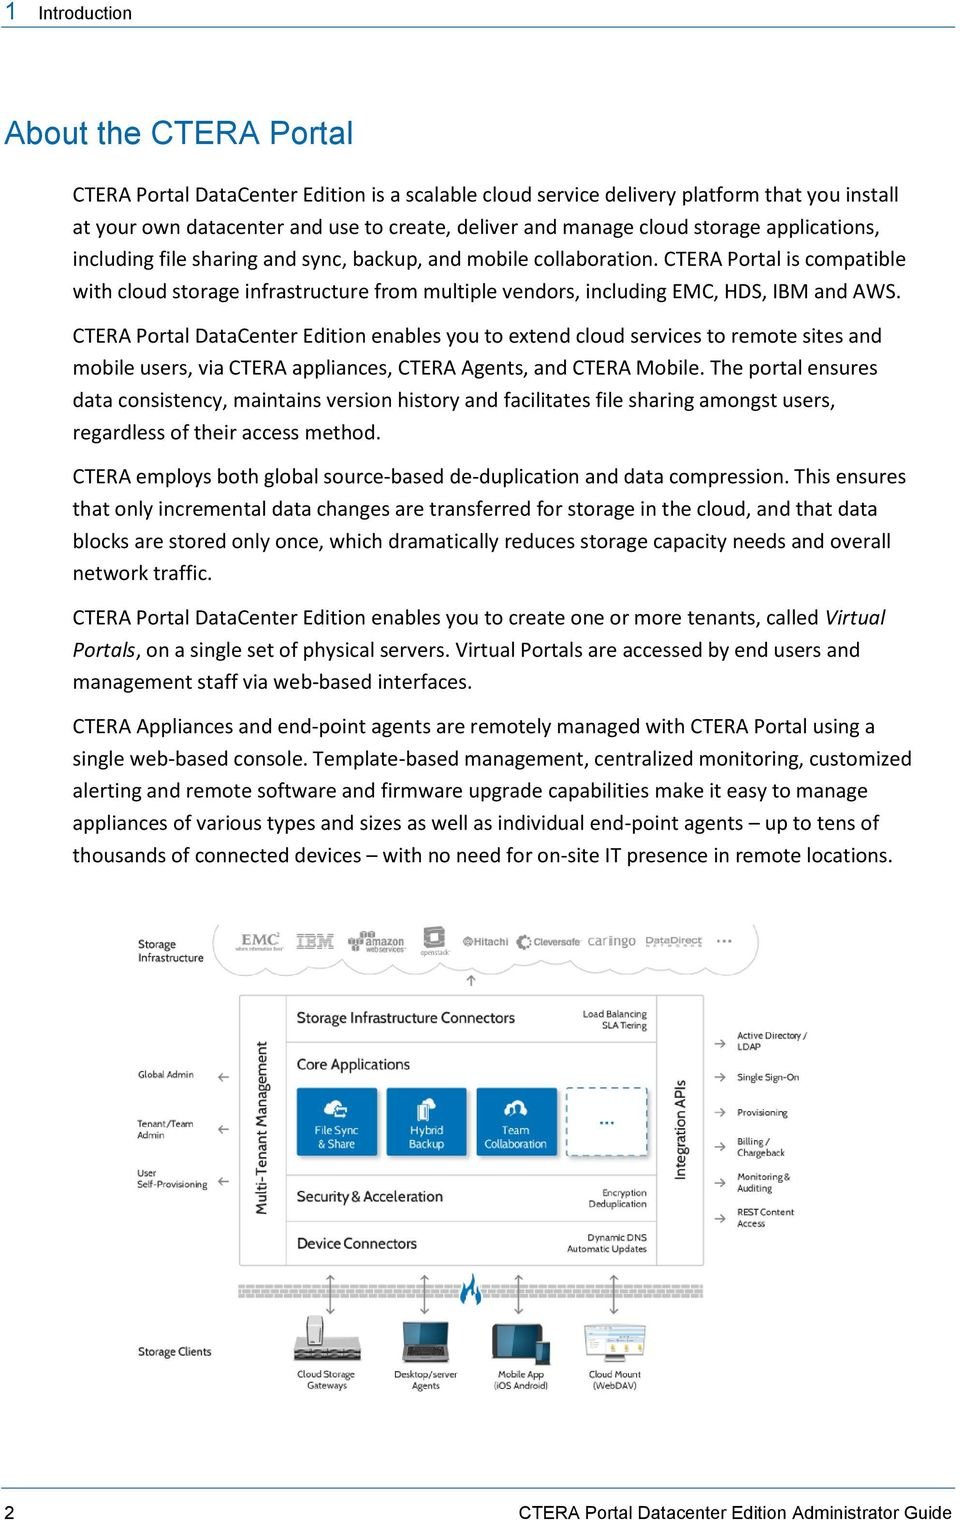 CTERA Portal is compatible with cloud storage infrastructure from multiple vendors, including EMC, HDS, IBM and AWS.